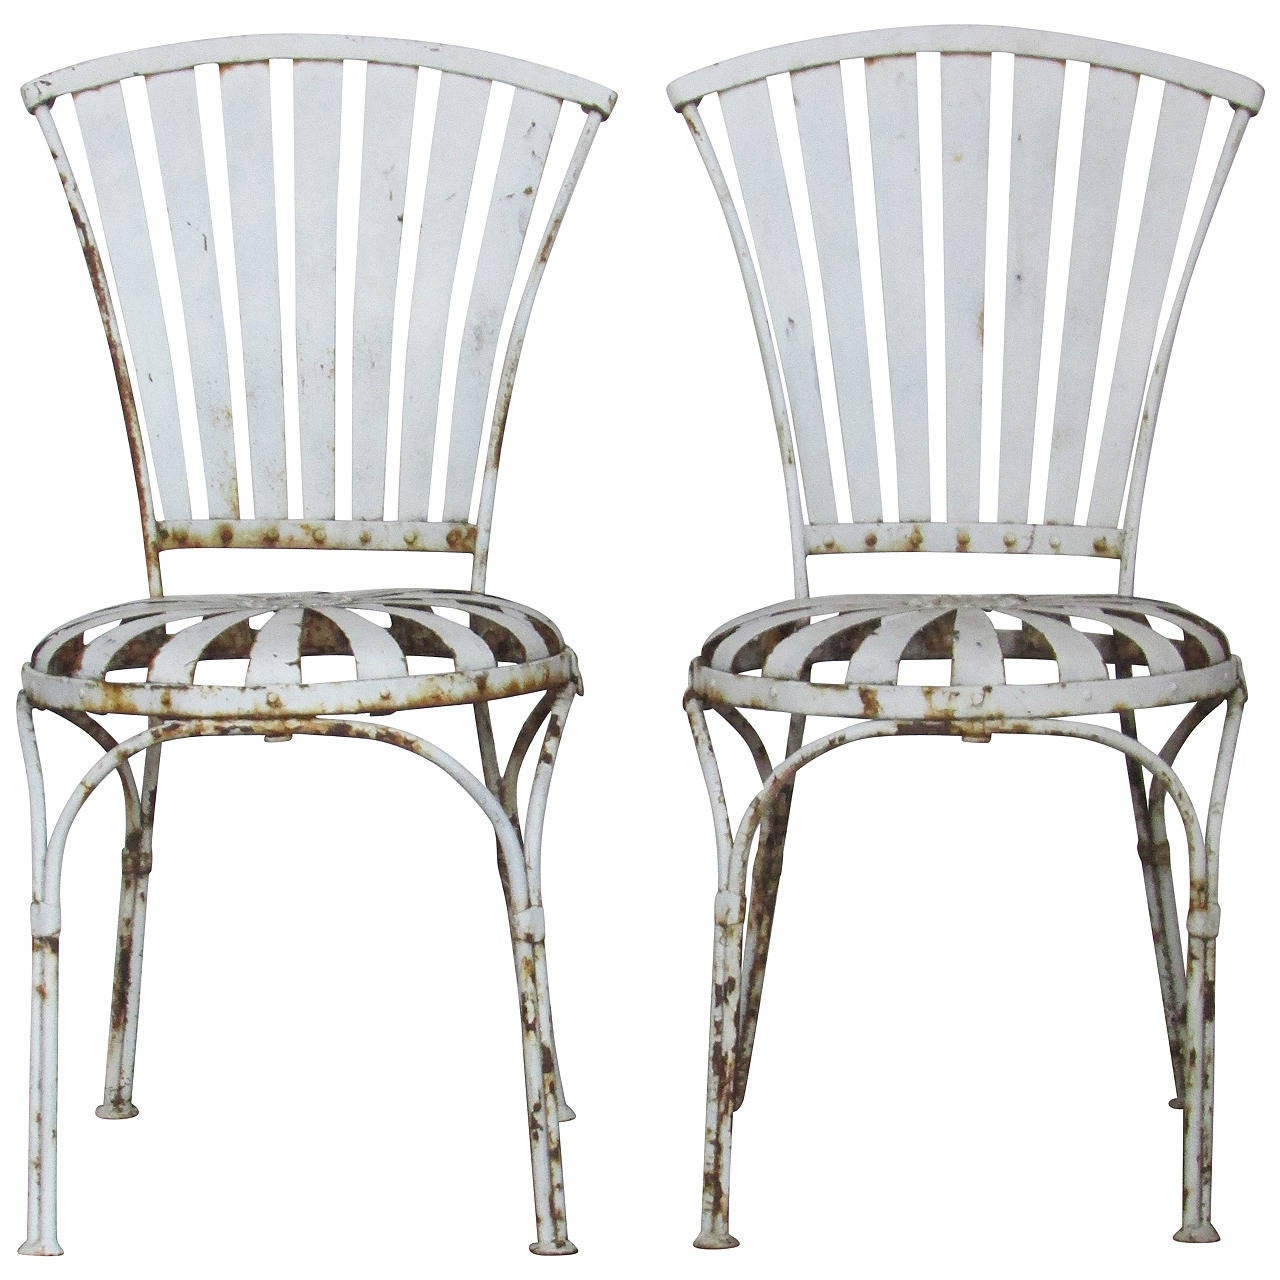 sprung steel garden chairs by francois carre 1